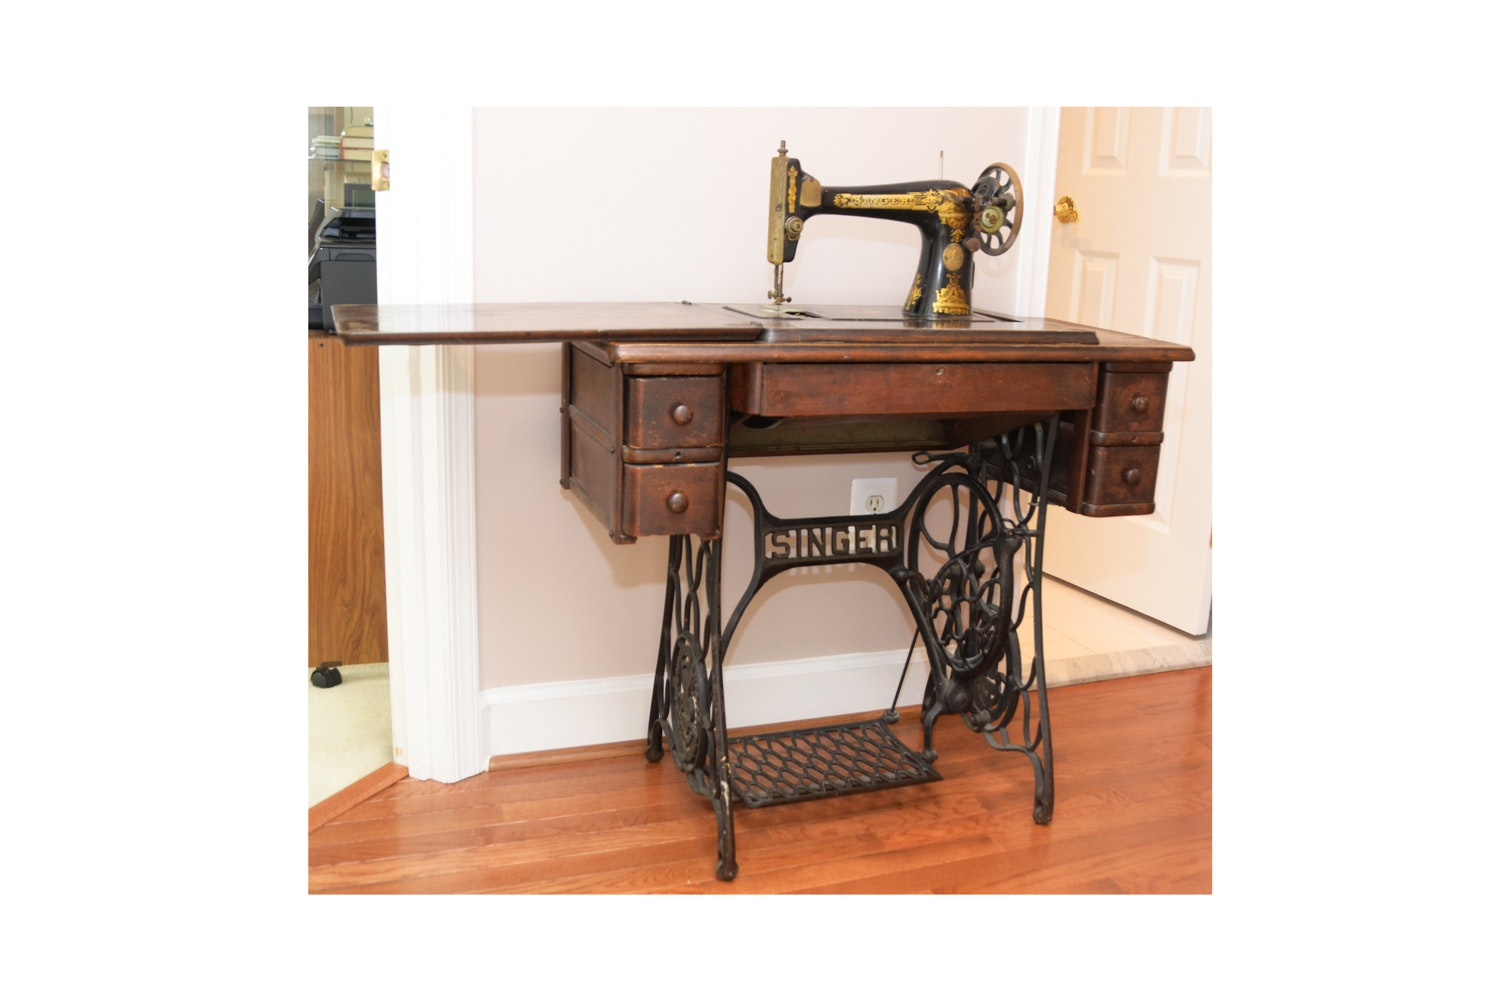 C. 1929 Singer Sewing Machine with Table